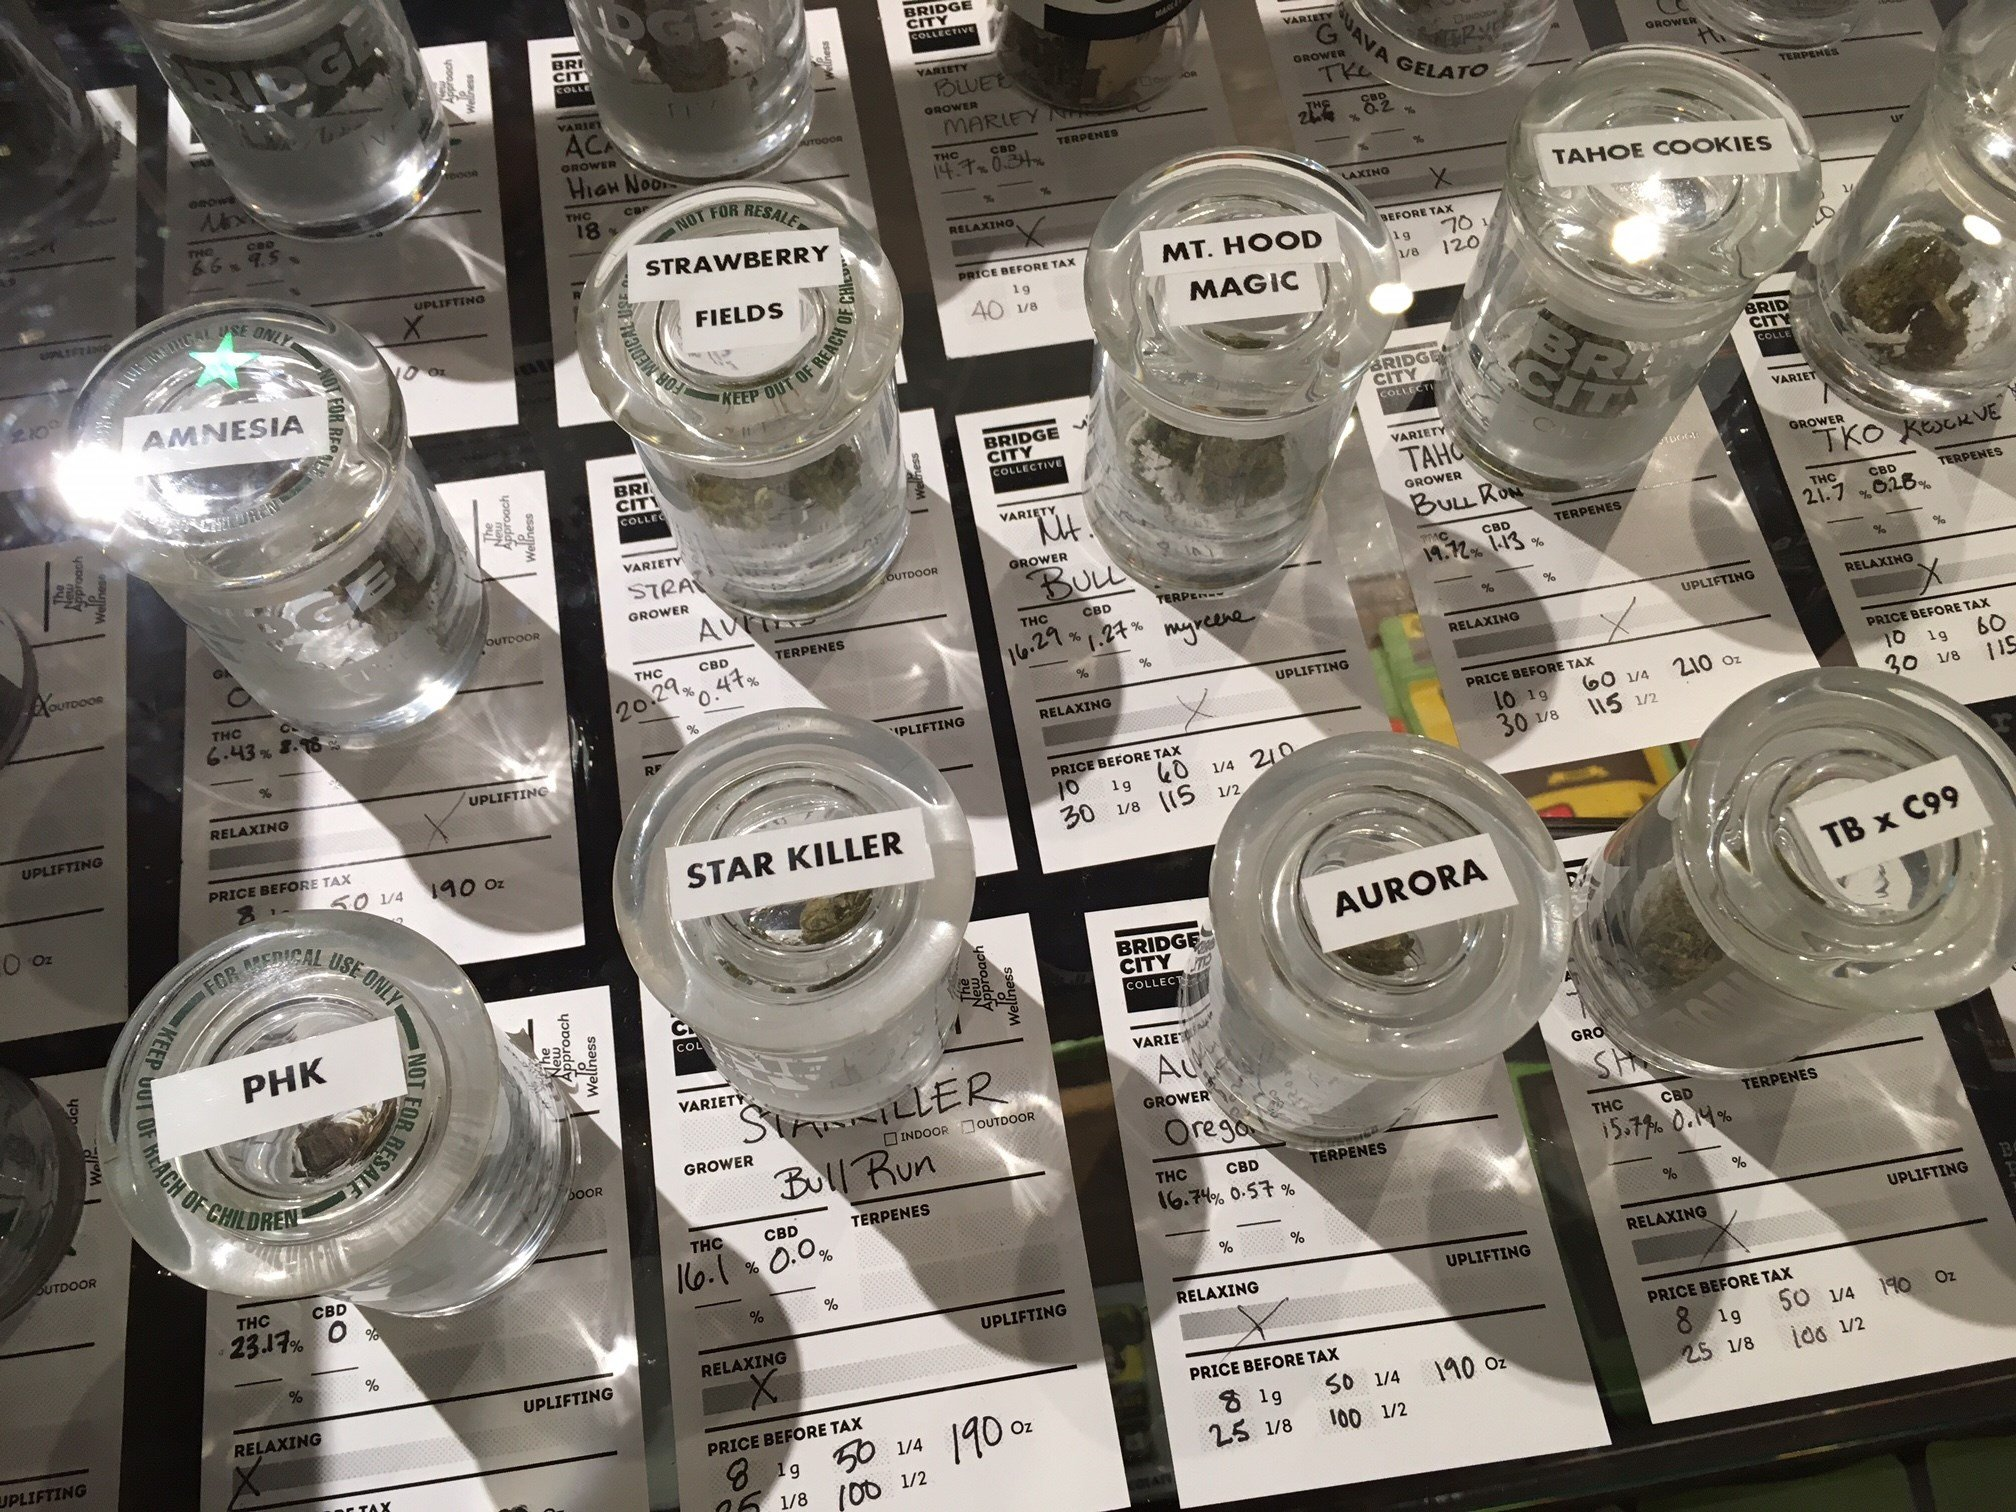 Marijuana at Bridge City Collective on Southeast Grand. (KPTV)